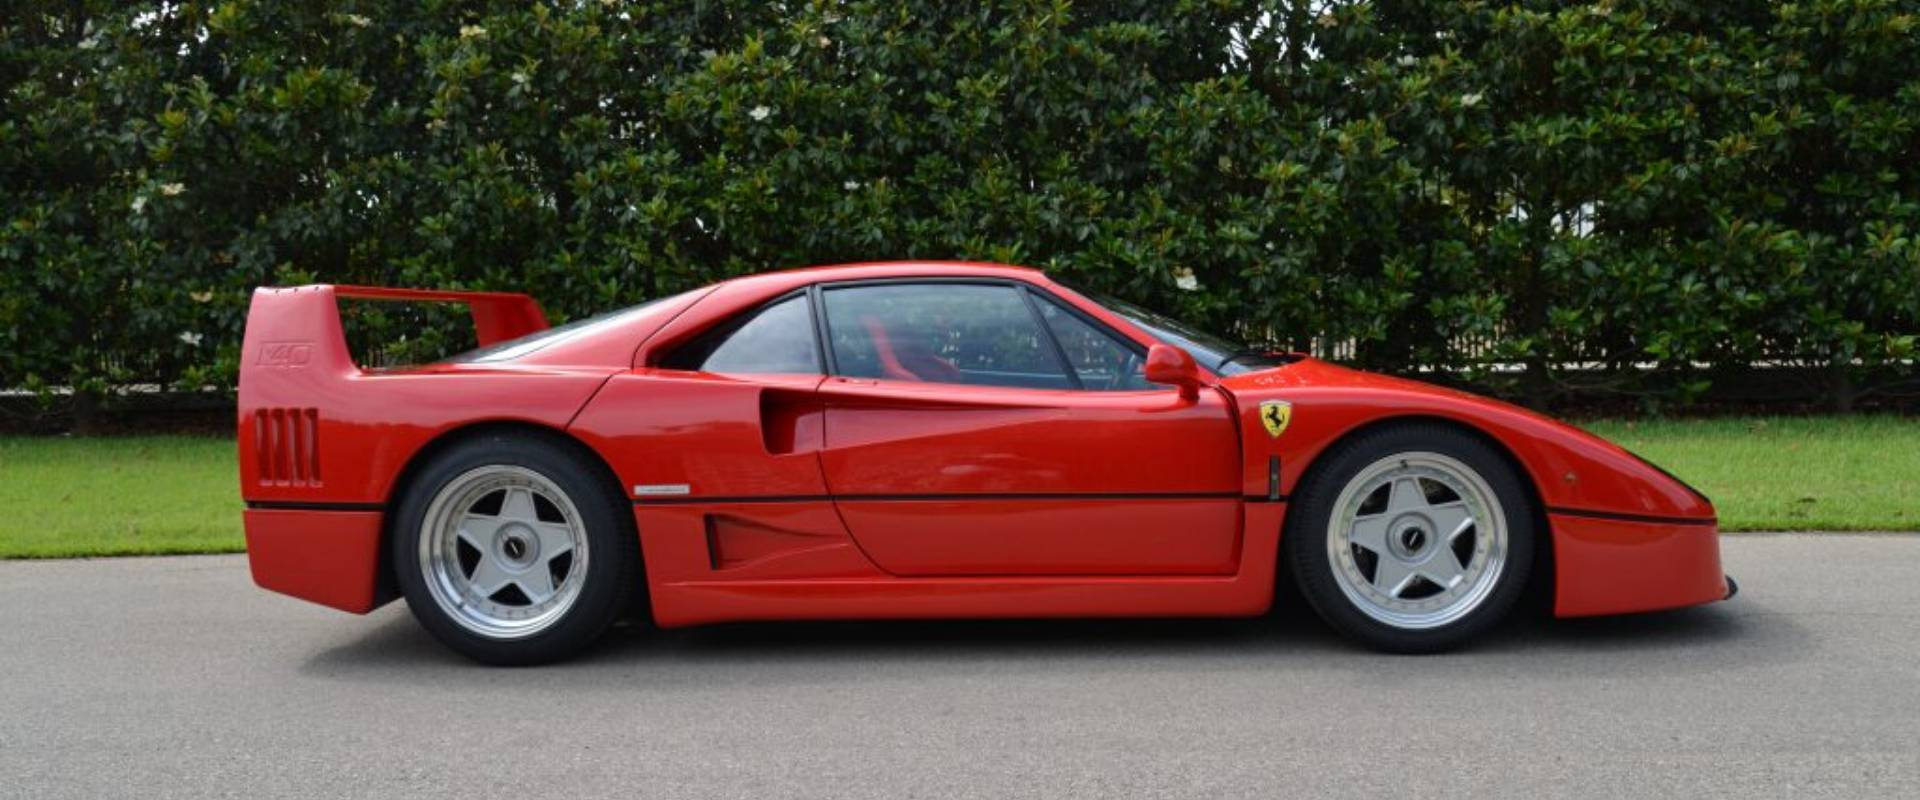 Ferrari F40 – 1st Service in the New World